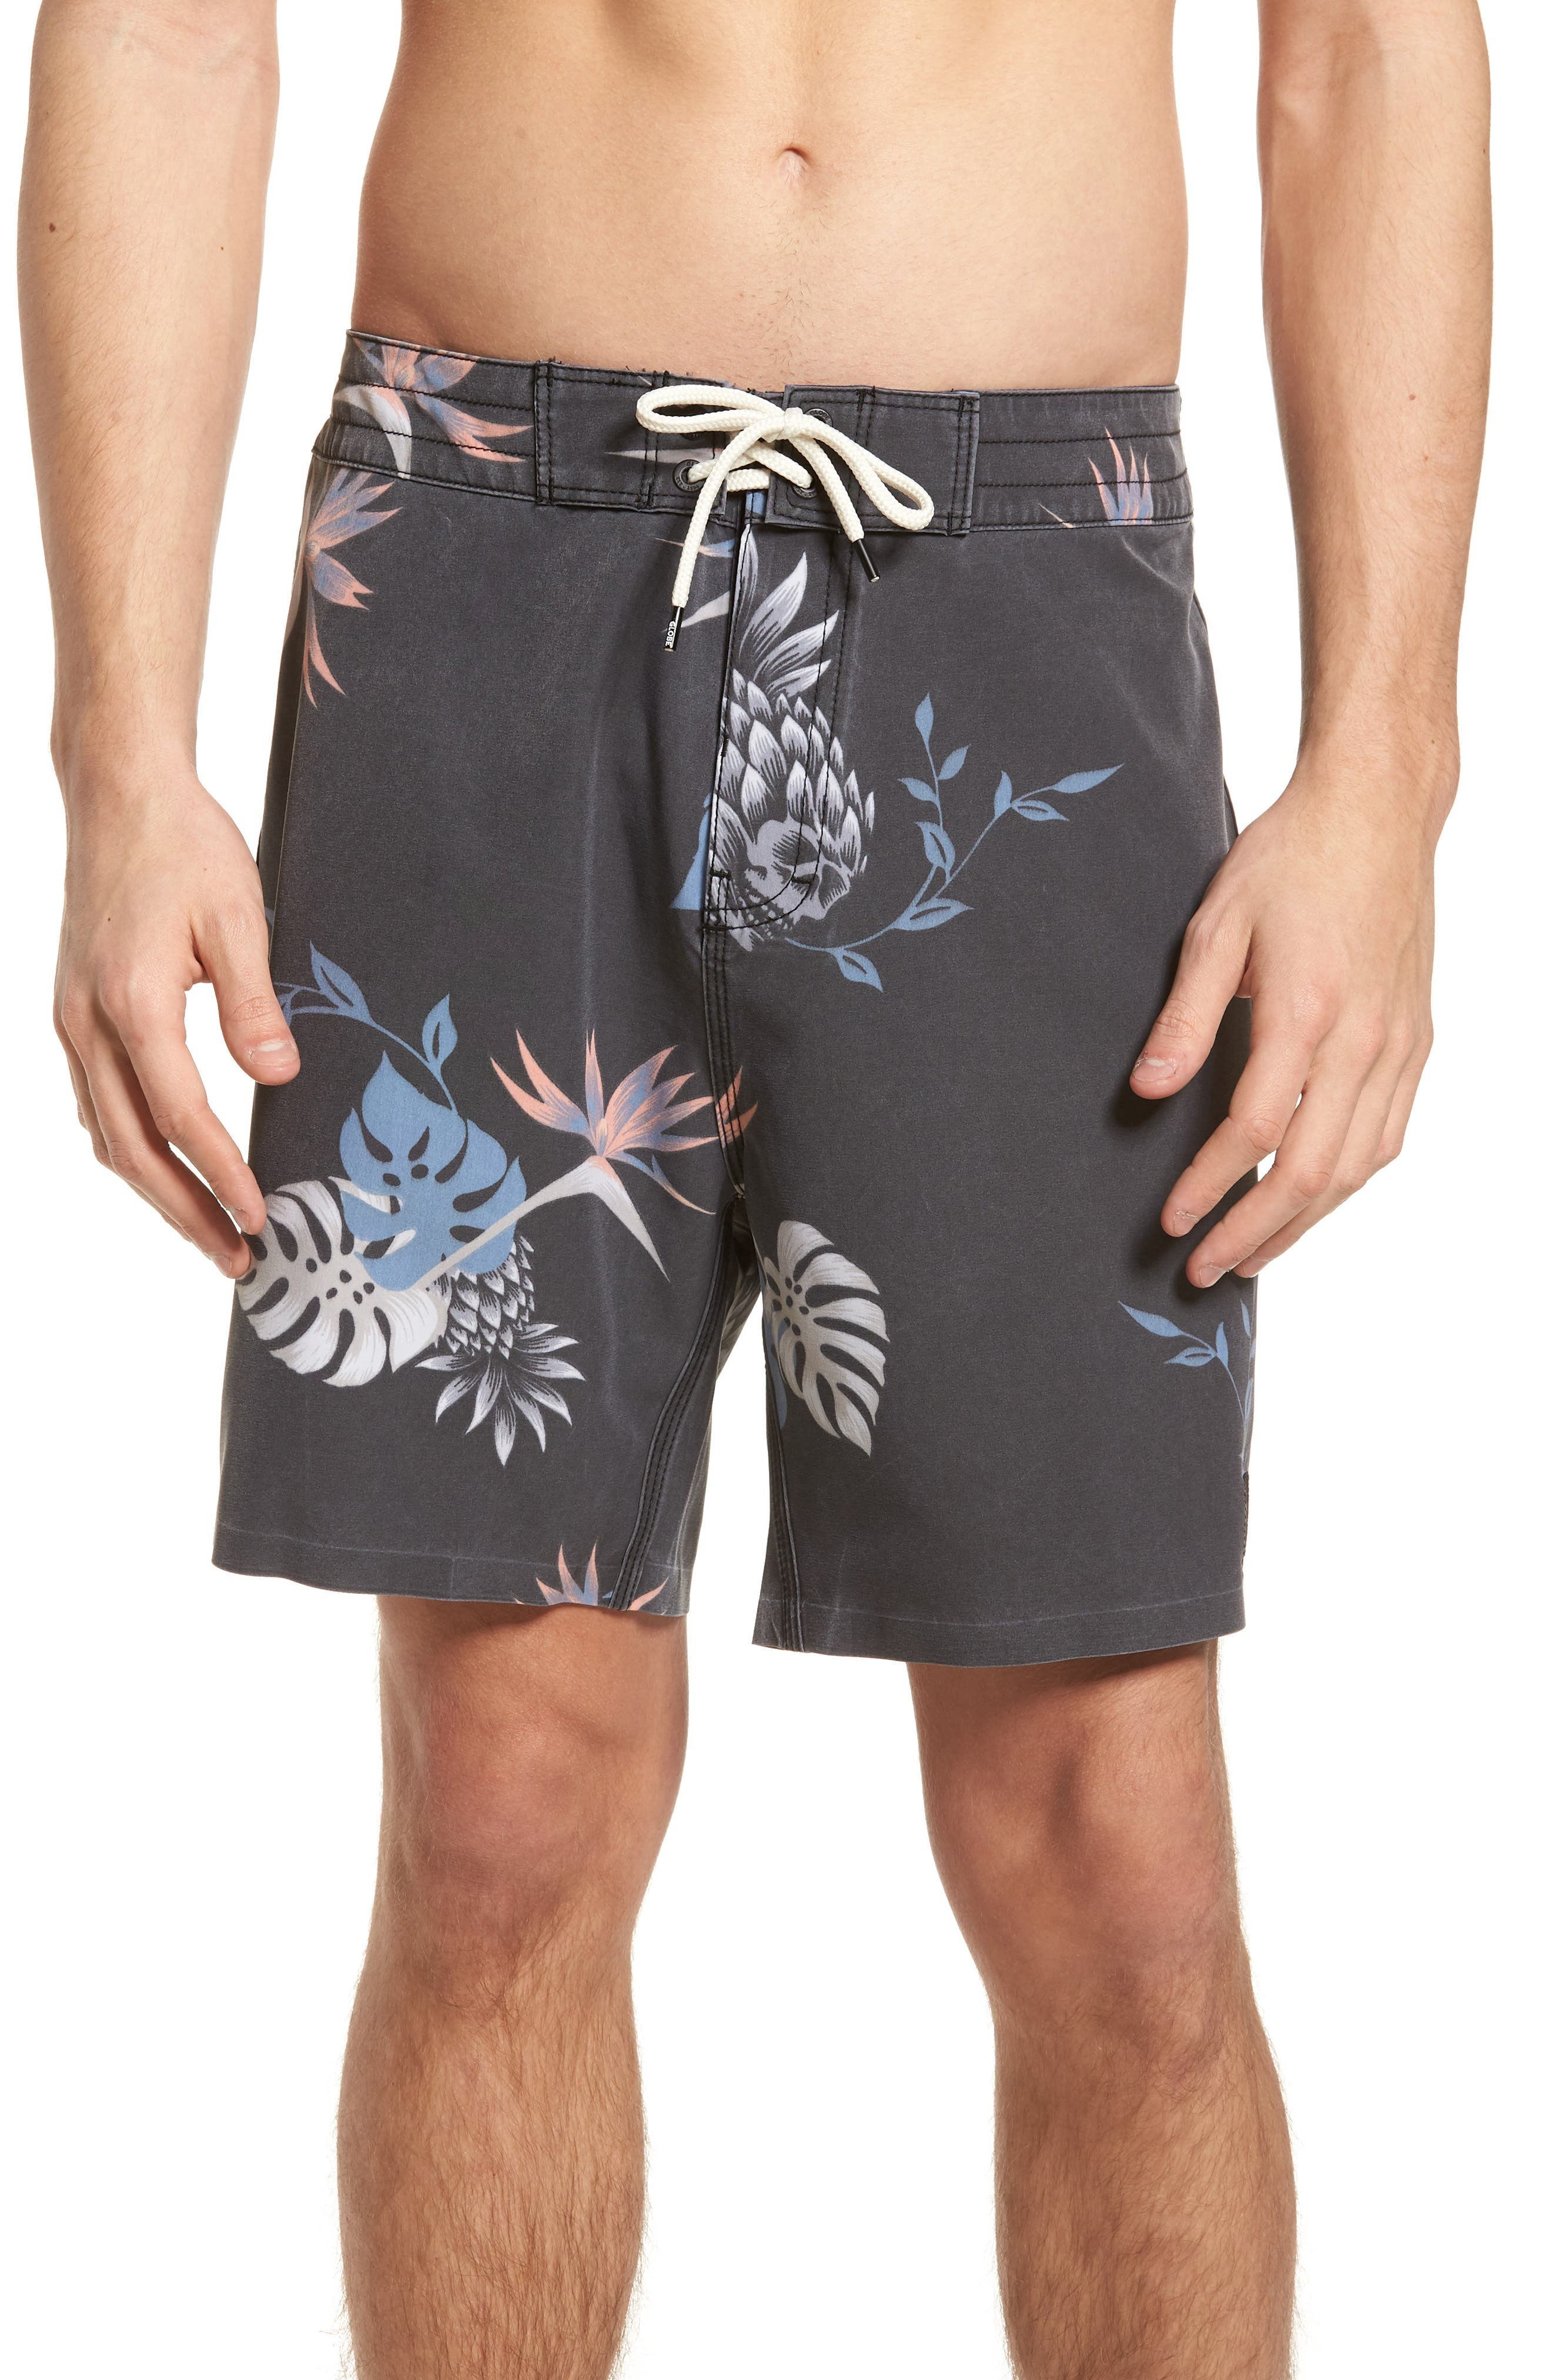 Shangri-La 3.0 Board Shorts,                             Main thumbnail 1, color,                             Granite